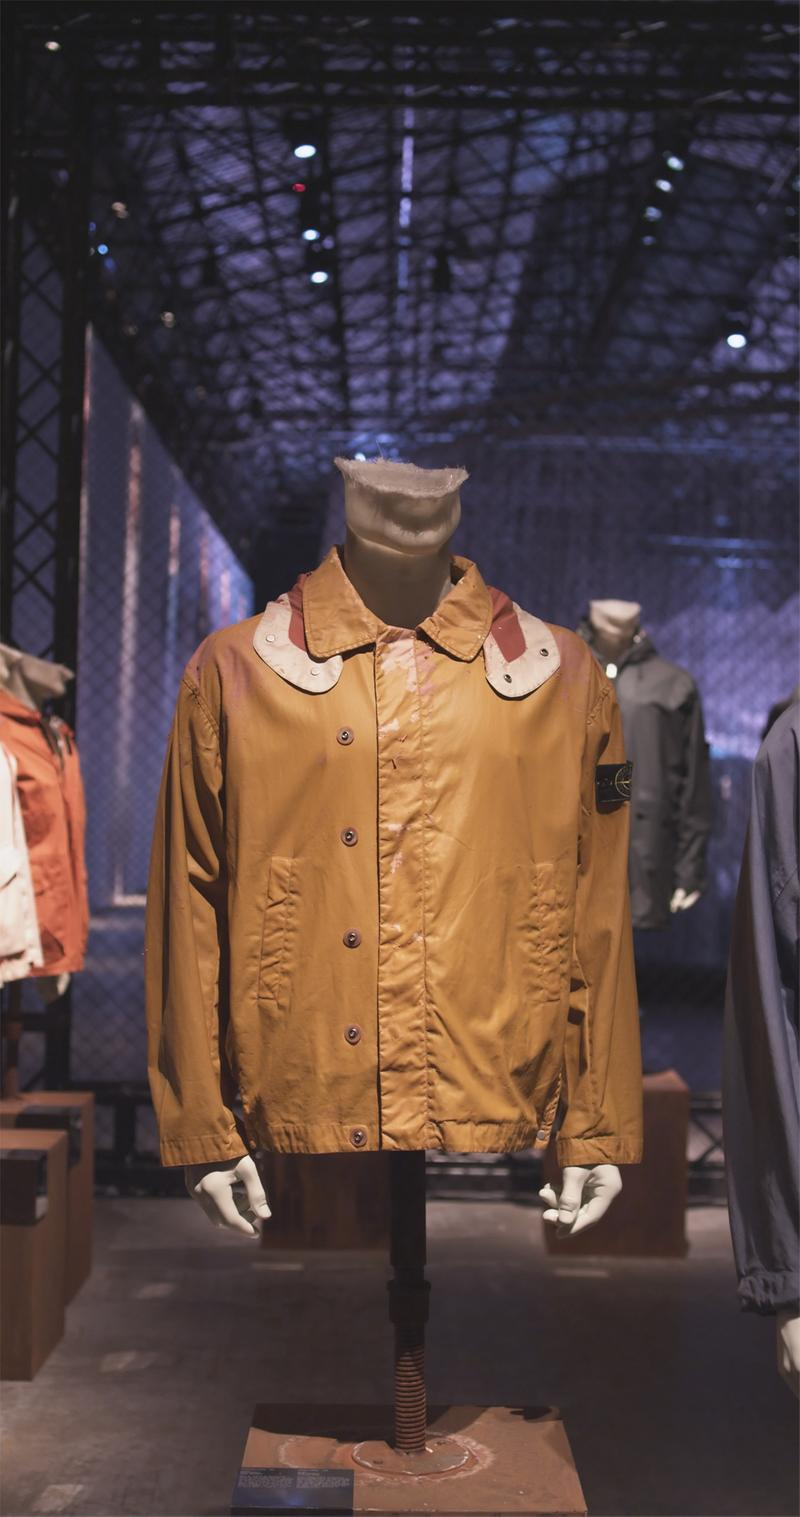 Light tan jacket with wide collar with contrasting placket displayed on mannequin bust in exhibition hall